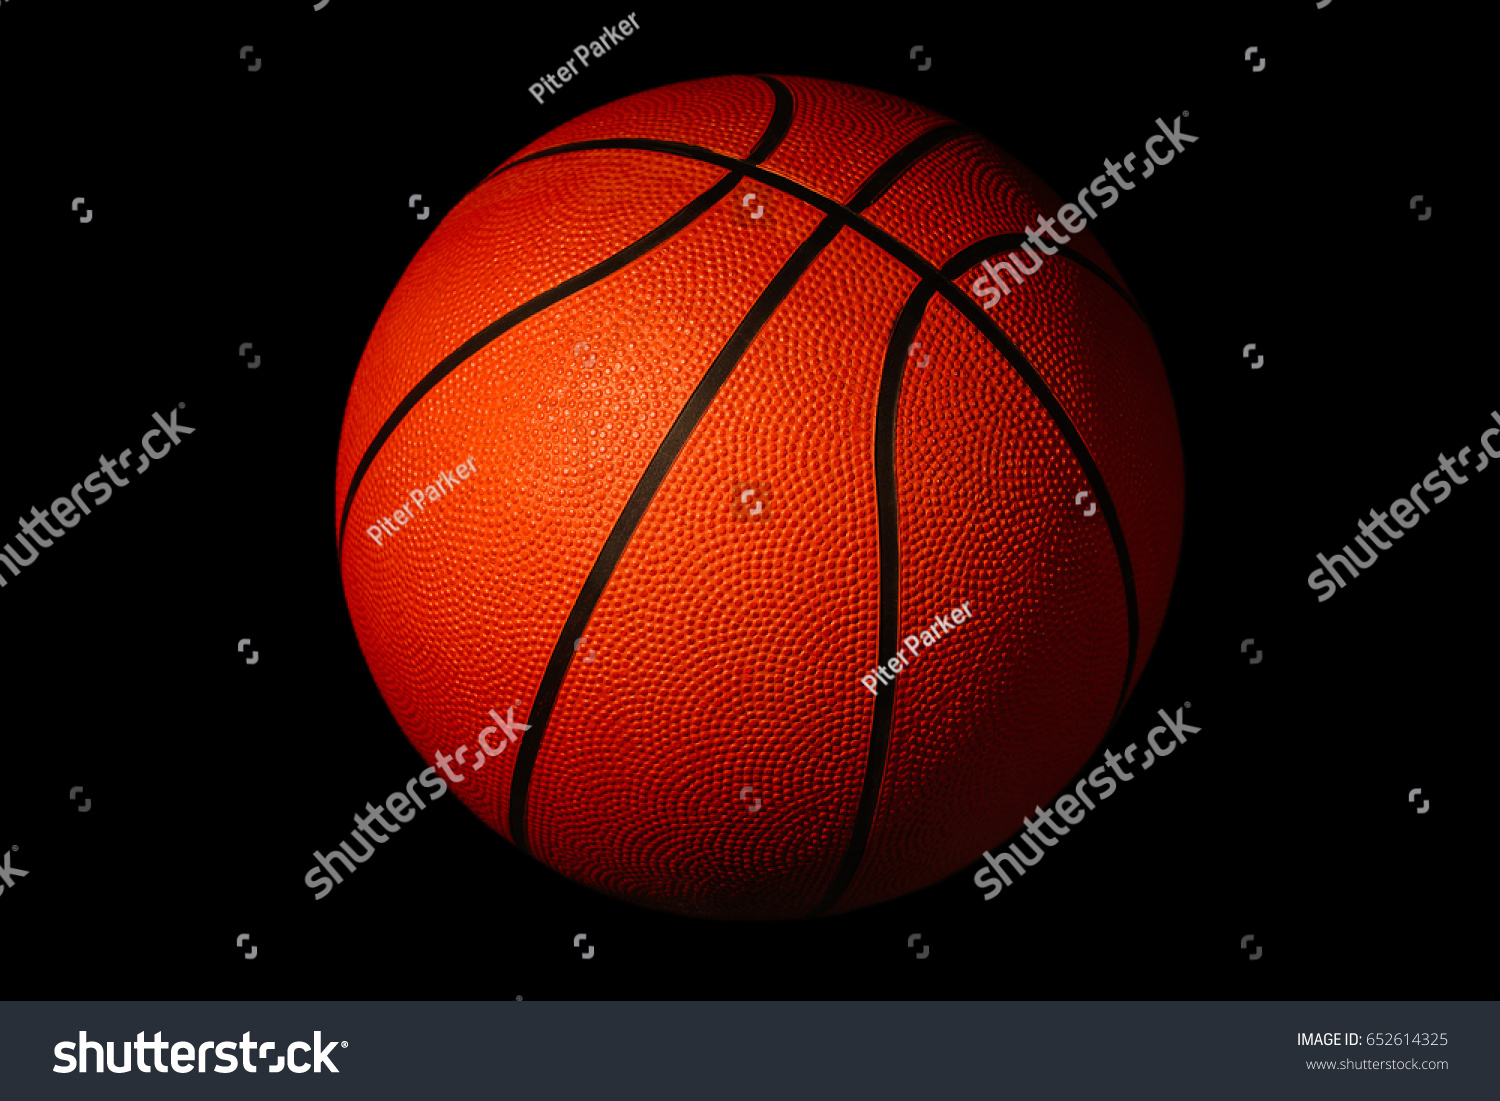 Basketball isolated on black background sports stock photo 652614325 basketball isolated on a black background as a sports and fitness symbol buycottarizona Choice Image